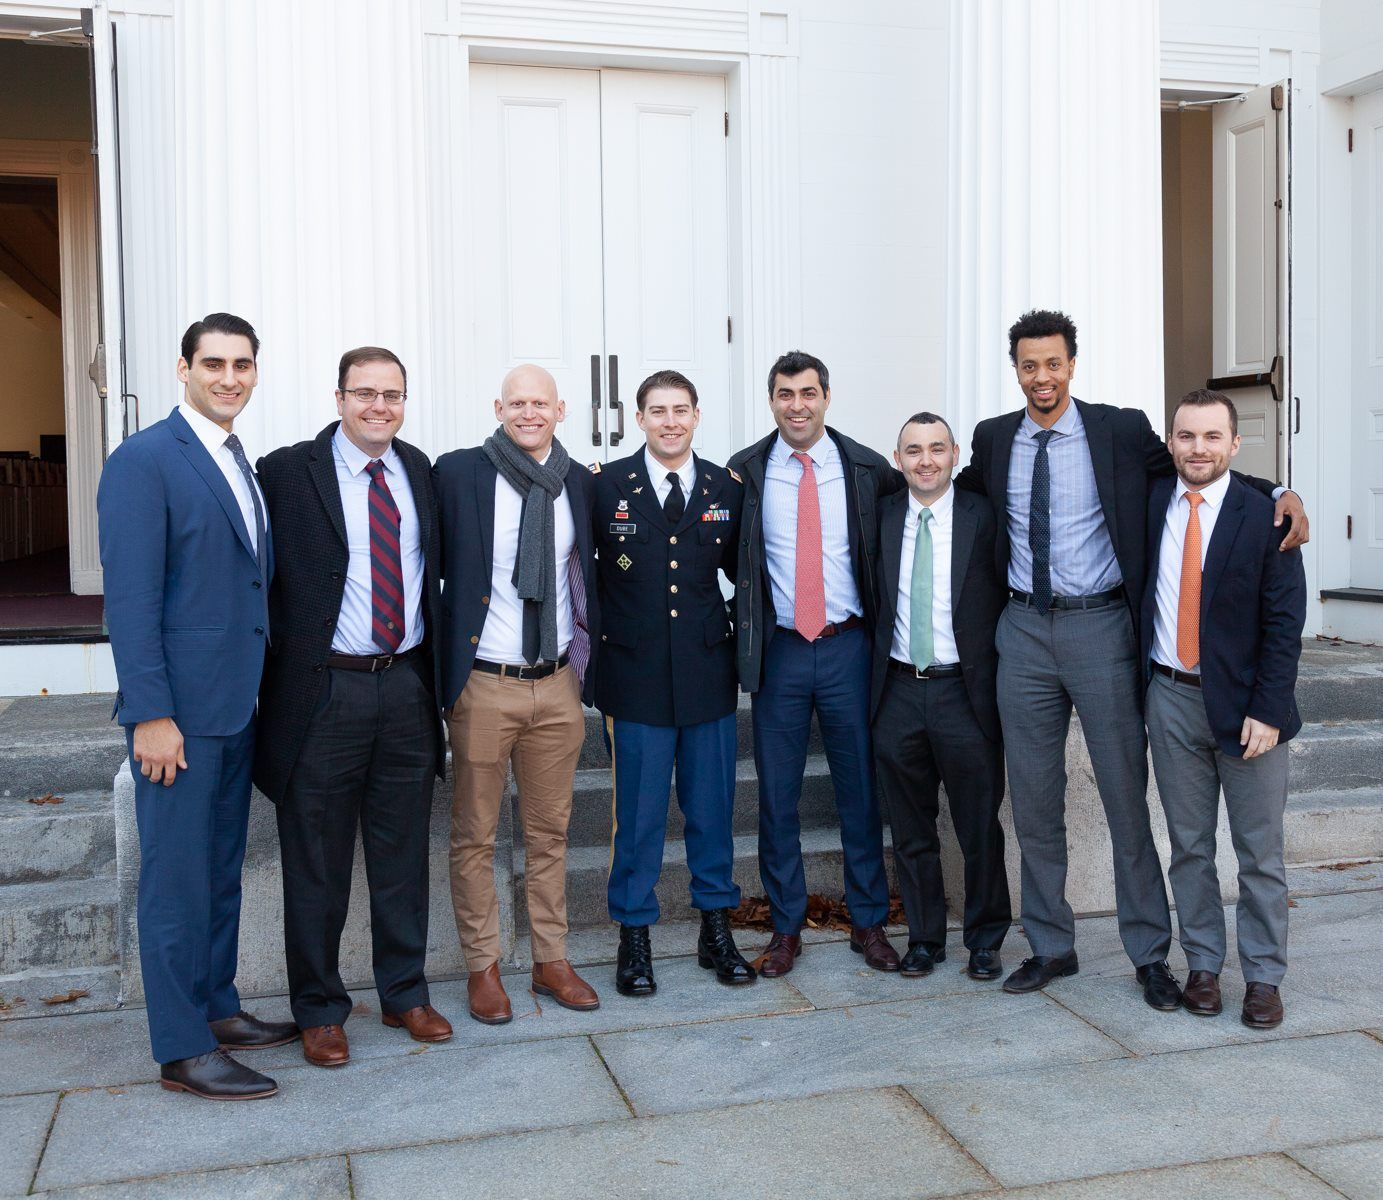 Mark Dube '07, a Westpoint graduate and U.S. Army Blackhawk pilot visits Hamilton Chapel to address the students for Veterans Day.